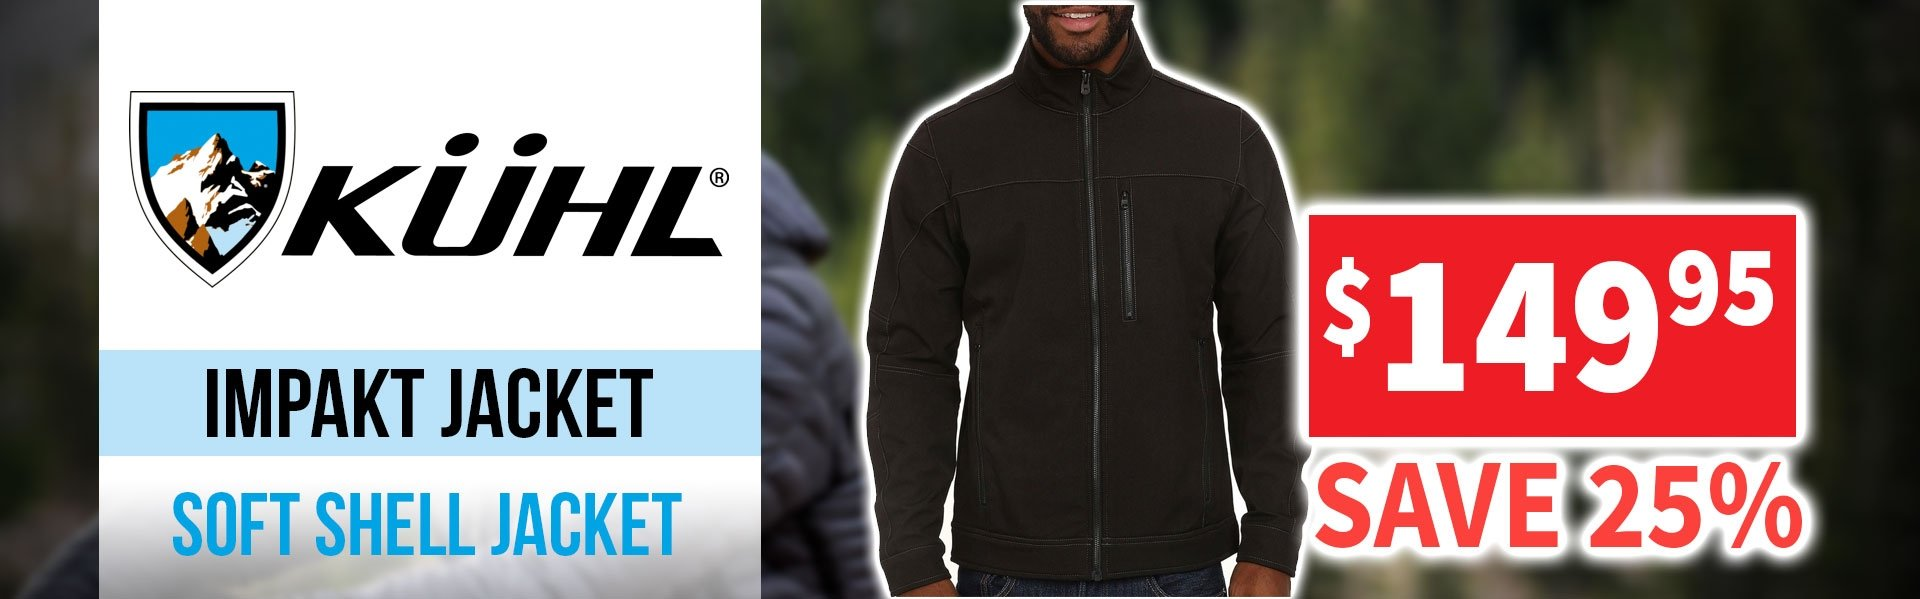 Kuhl Impackt Jacket Now $149.95